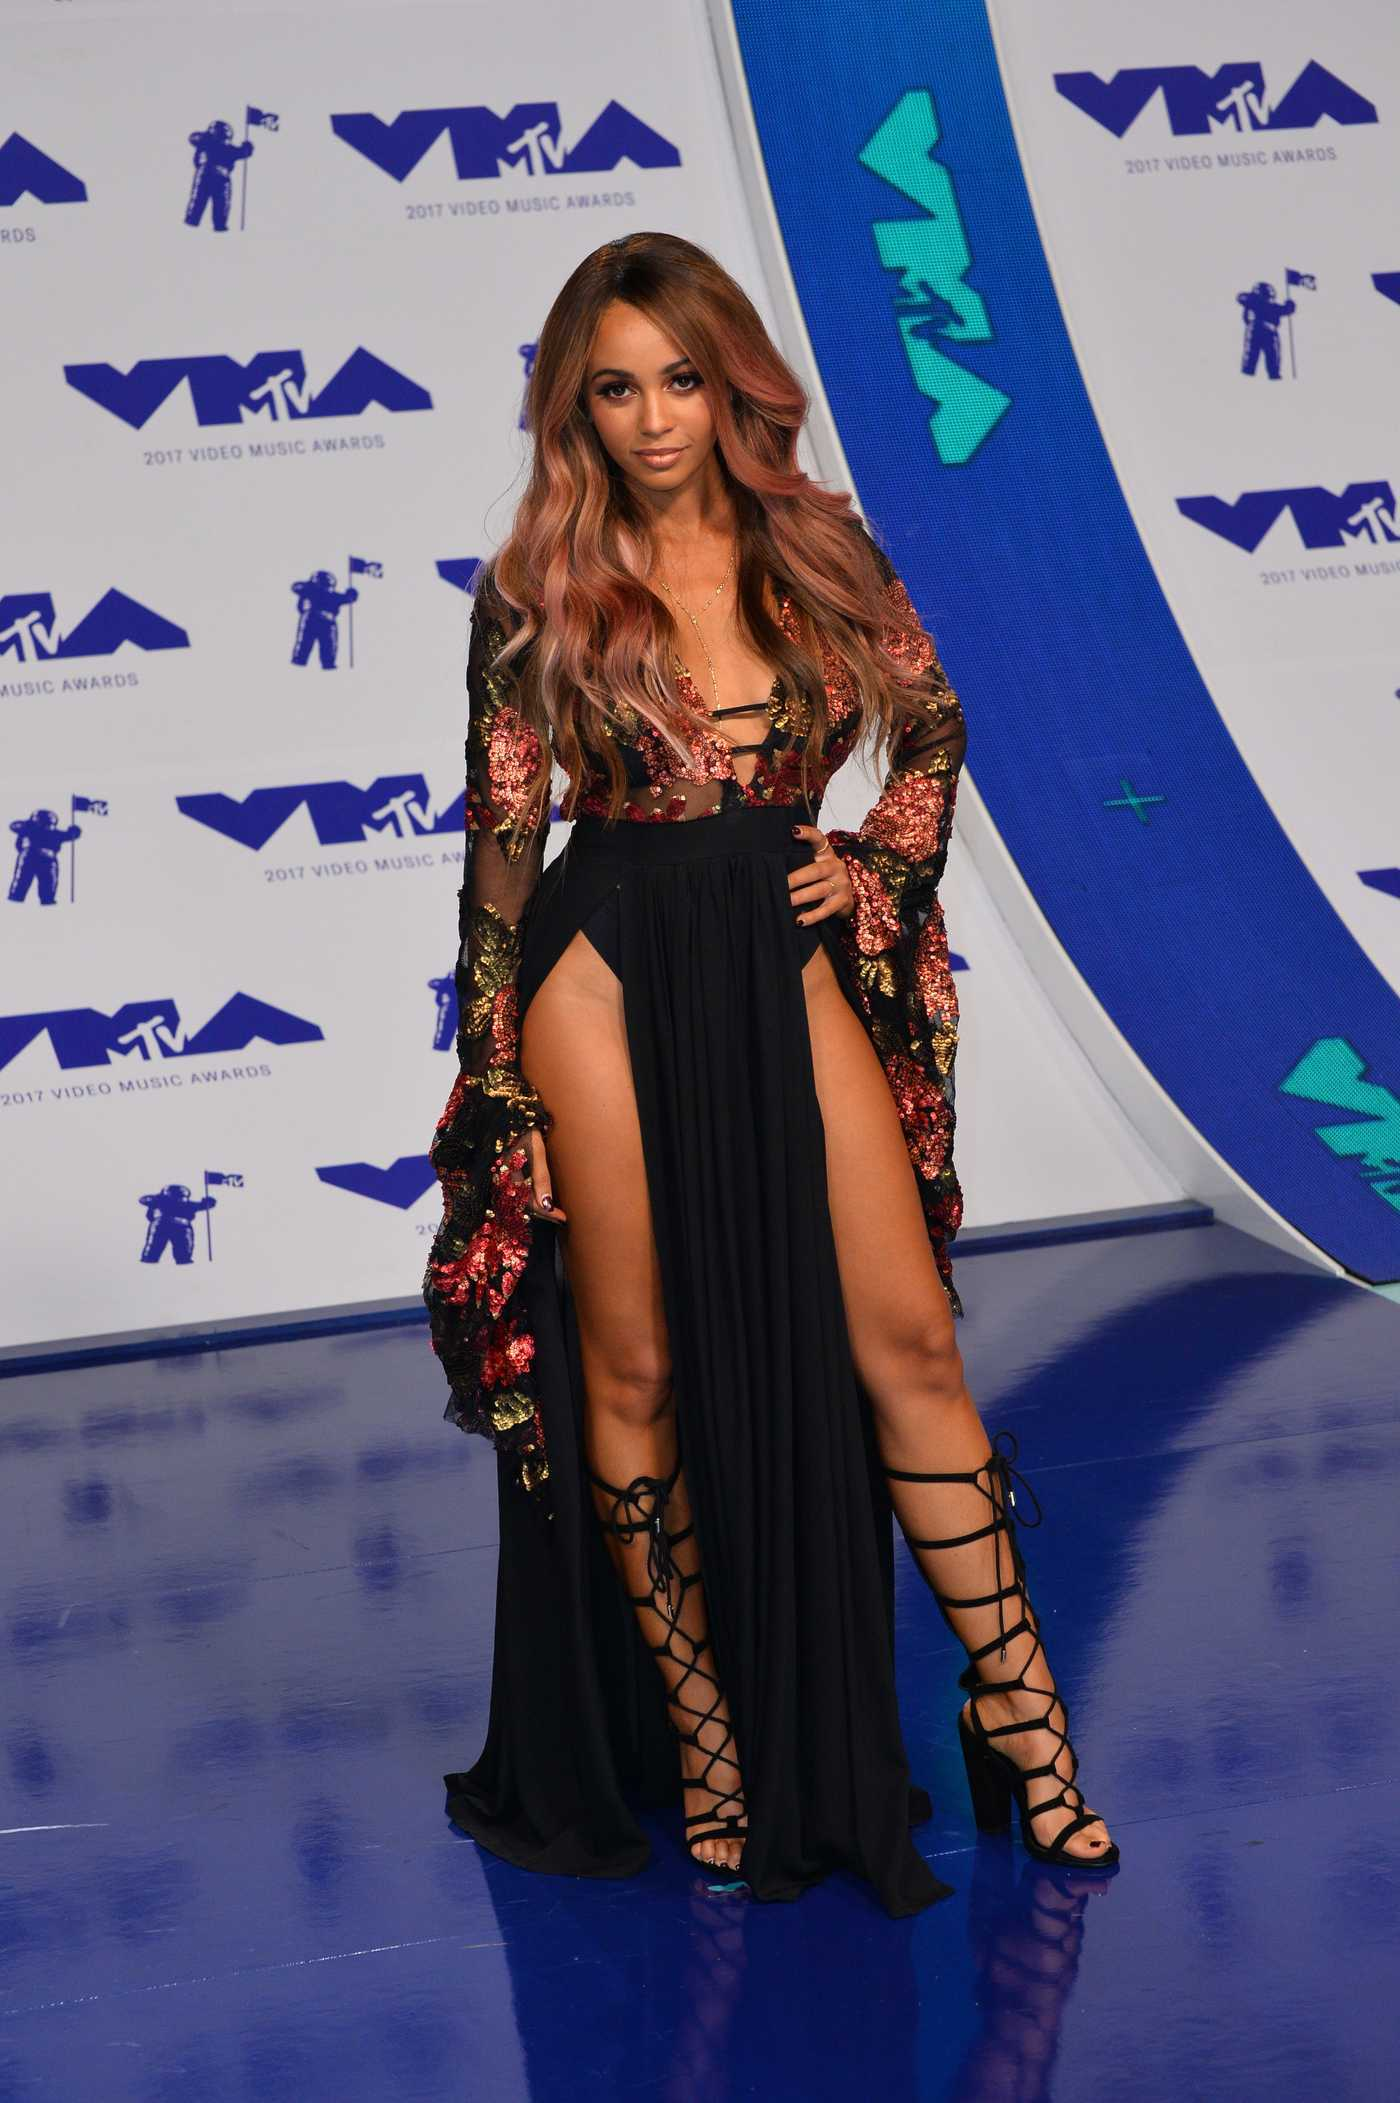 Vanessa Morgan at the 2017 MTV Video Music Awards in Los Angeles 08/27/2017